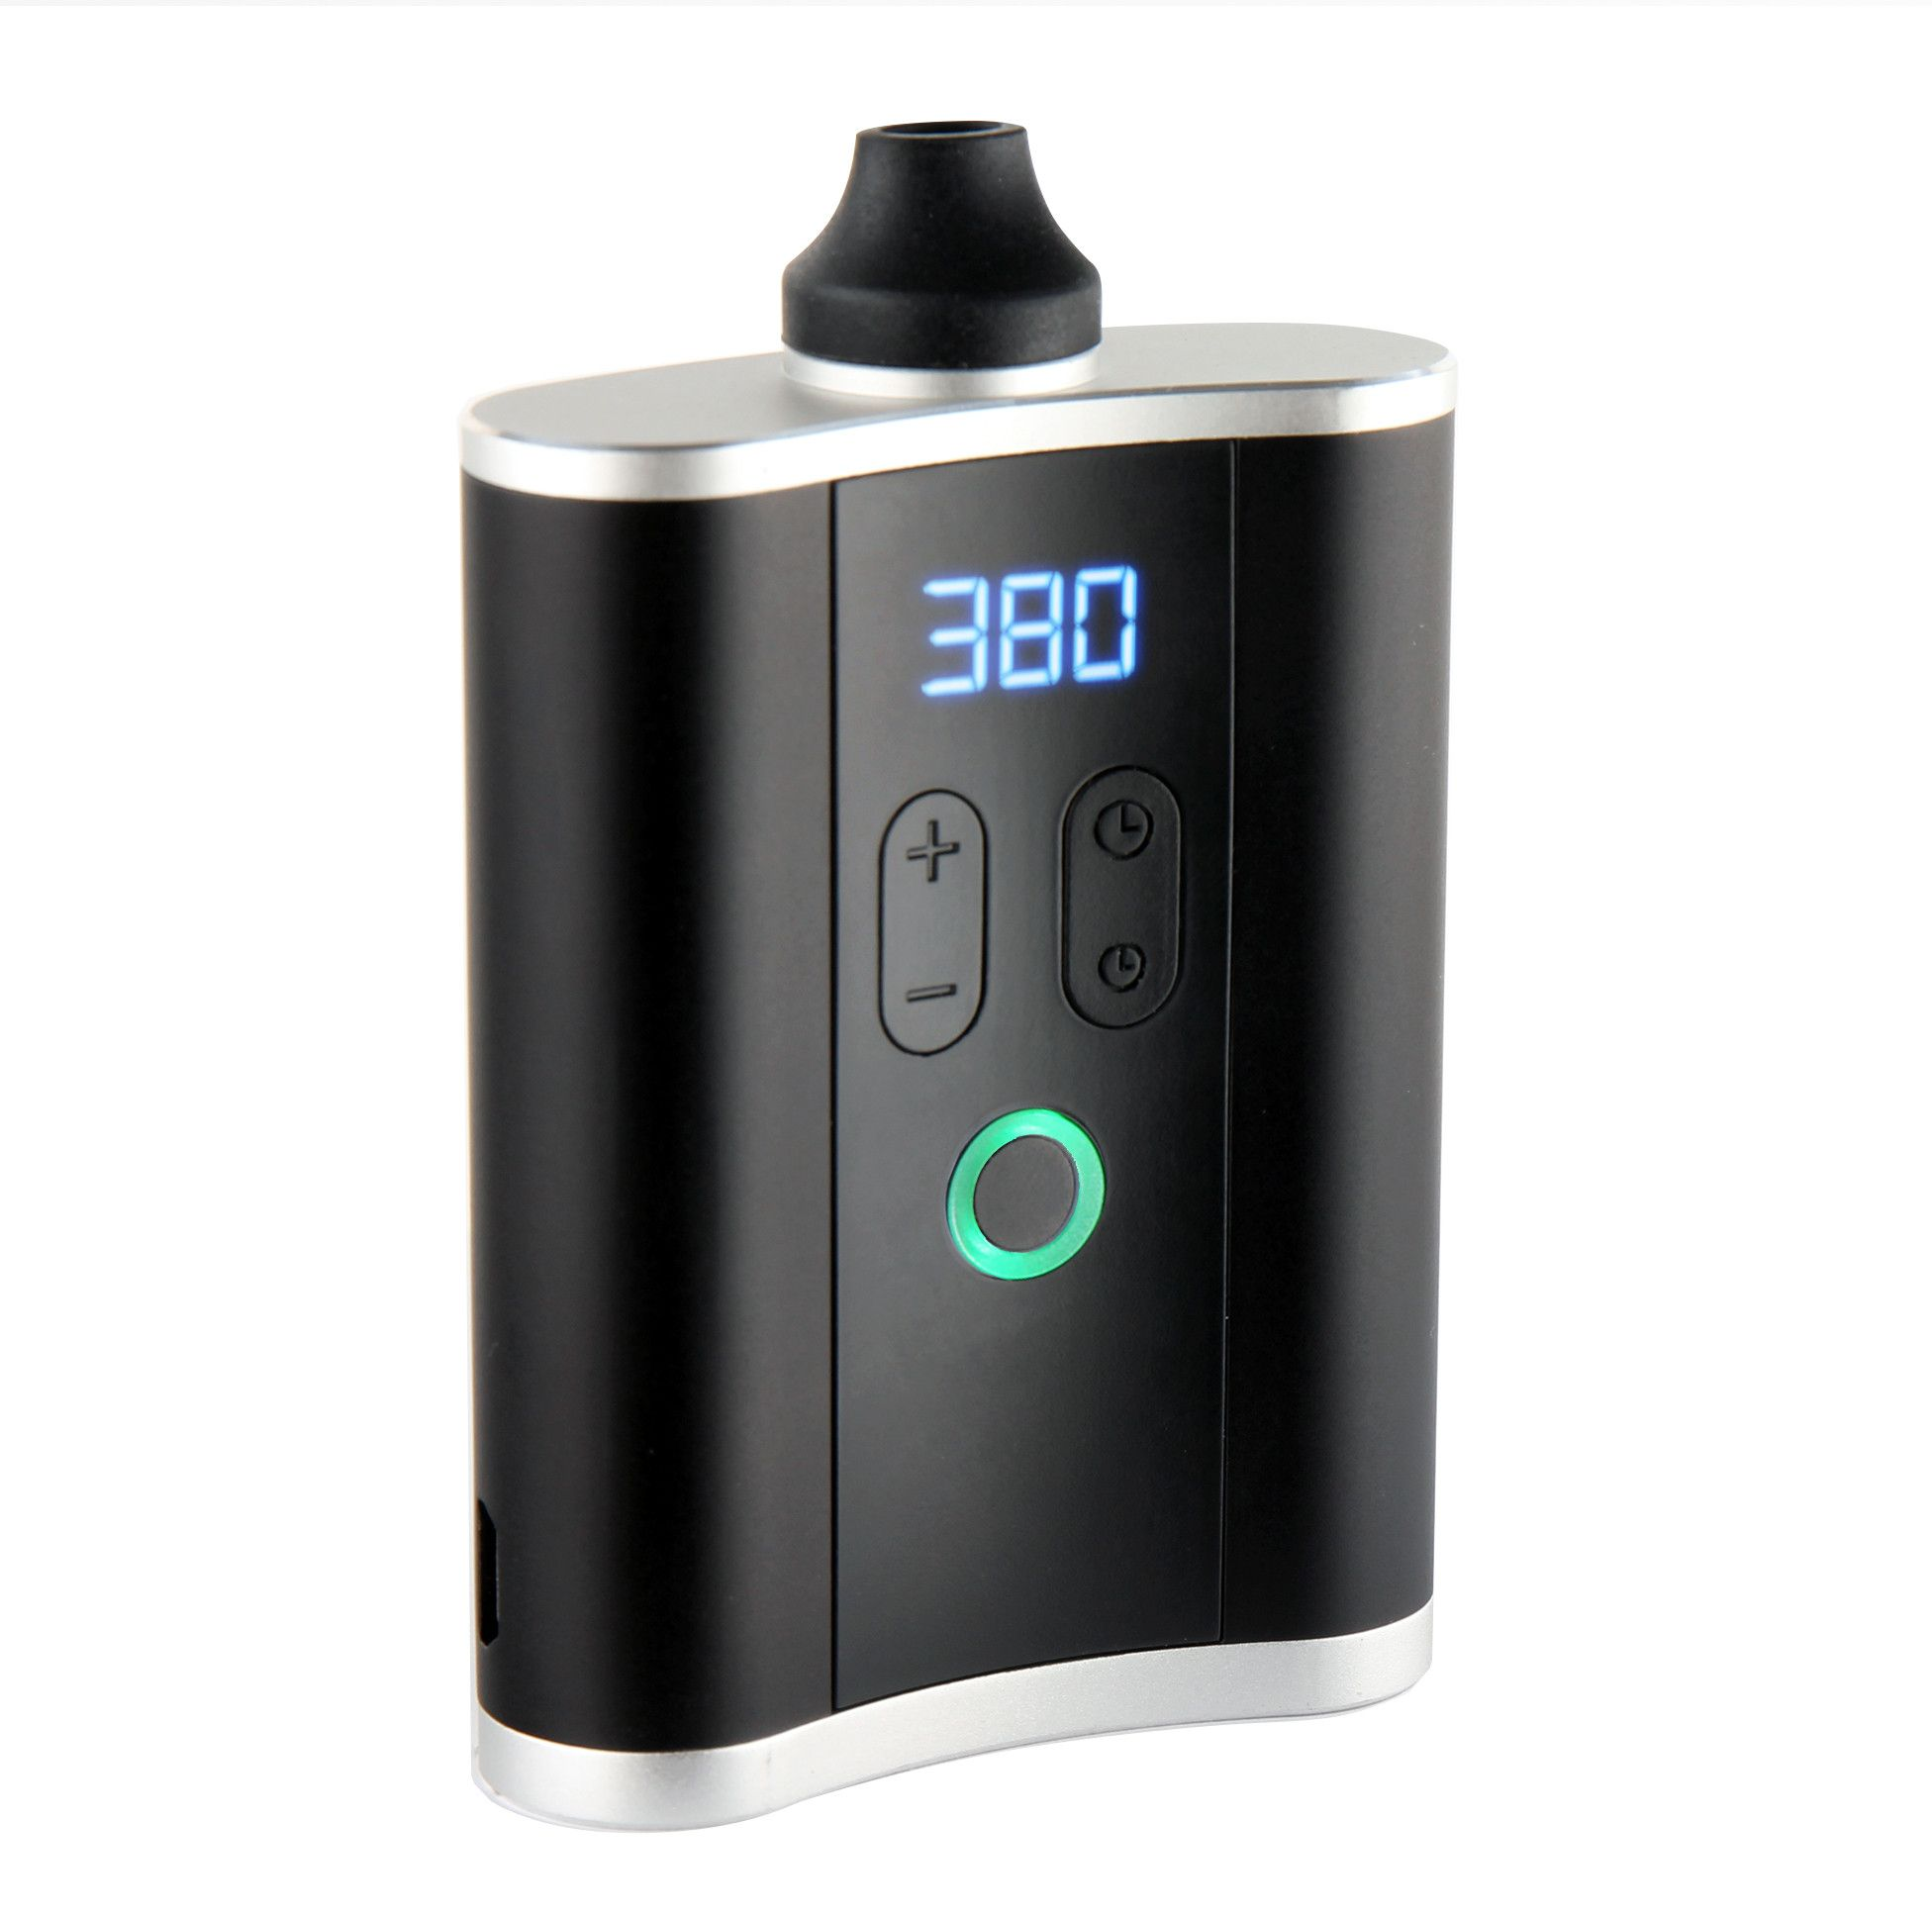 Cheap herbal vaporizers - Another Great Flask Style Pocket Vape The Hipvap Is Tiny And Vapes Anywhere From Of Weed At A Time Thoroughly With No Stirring Needed